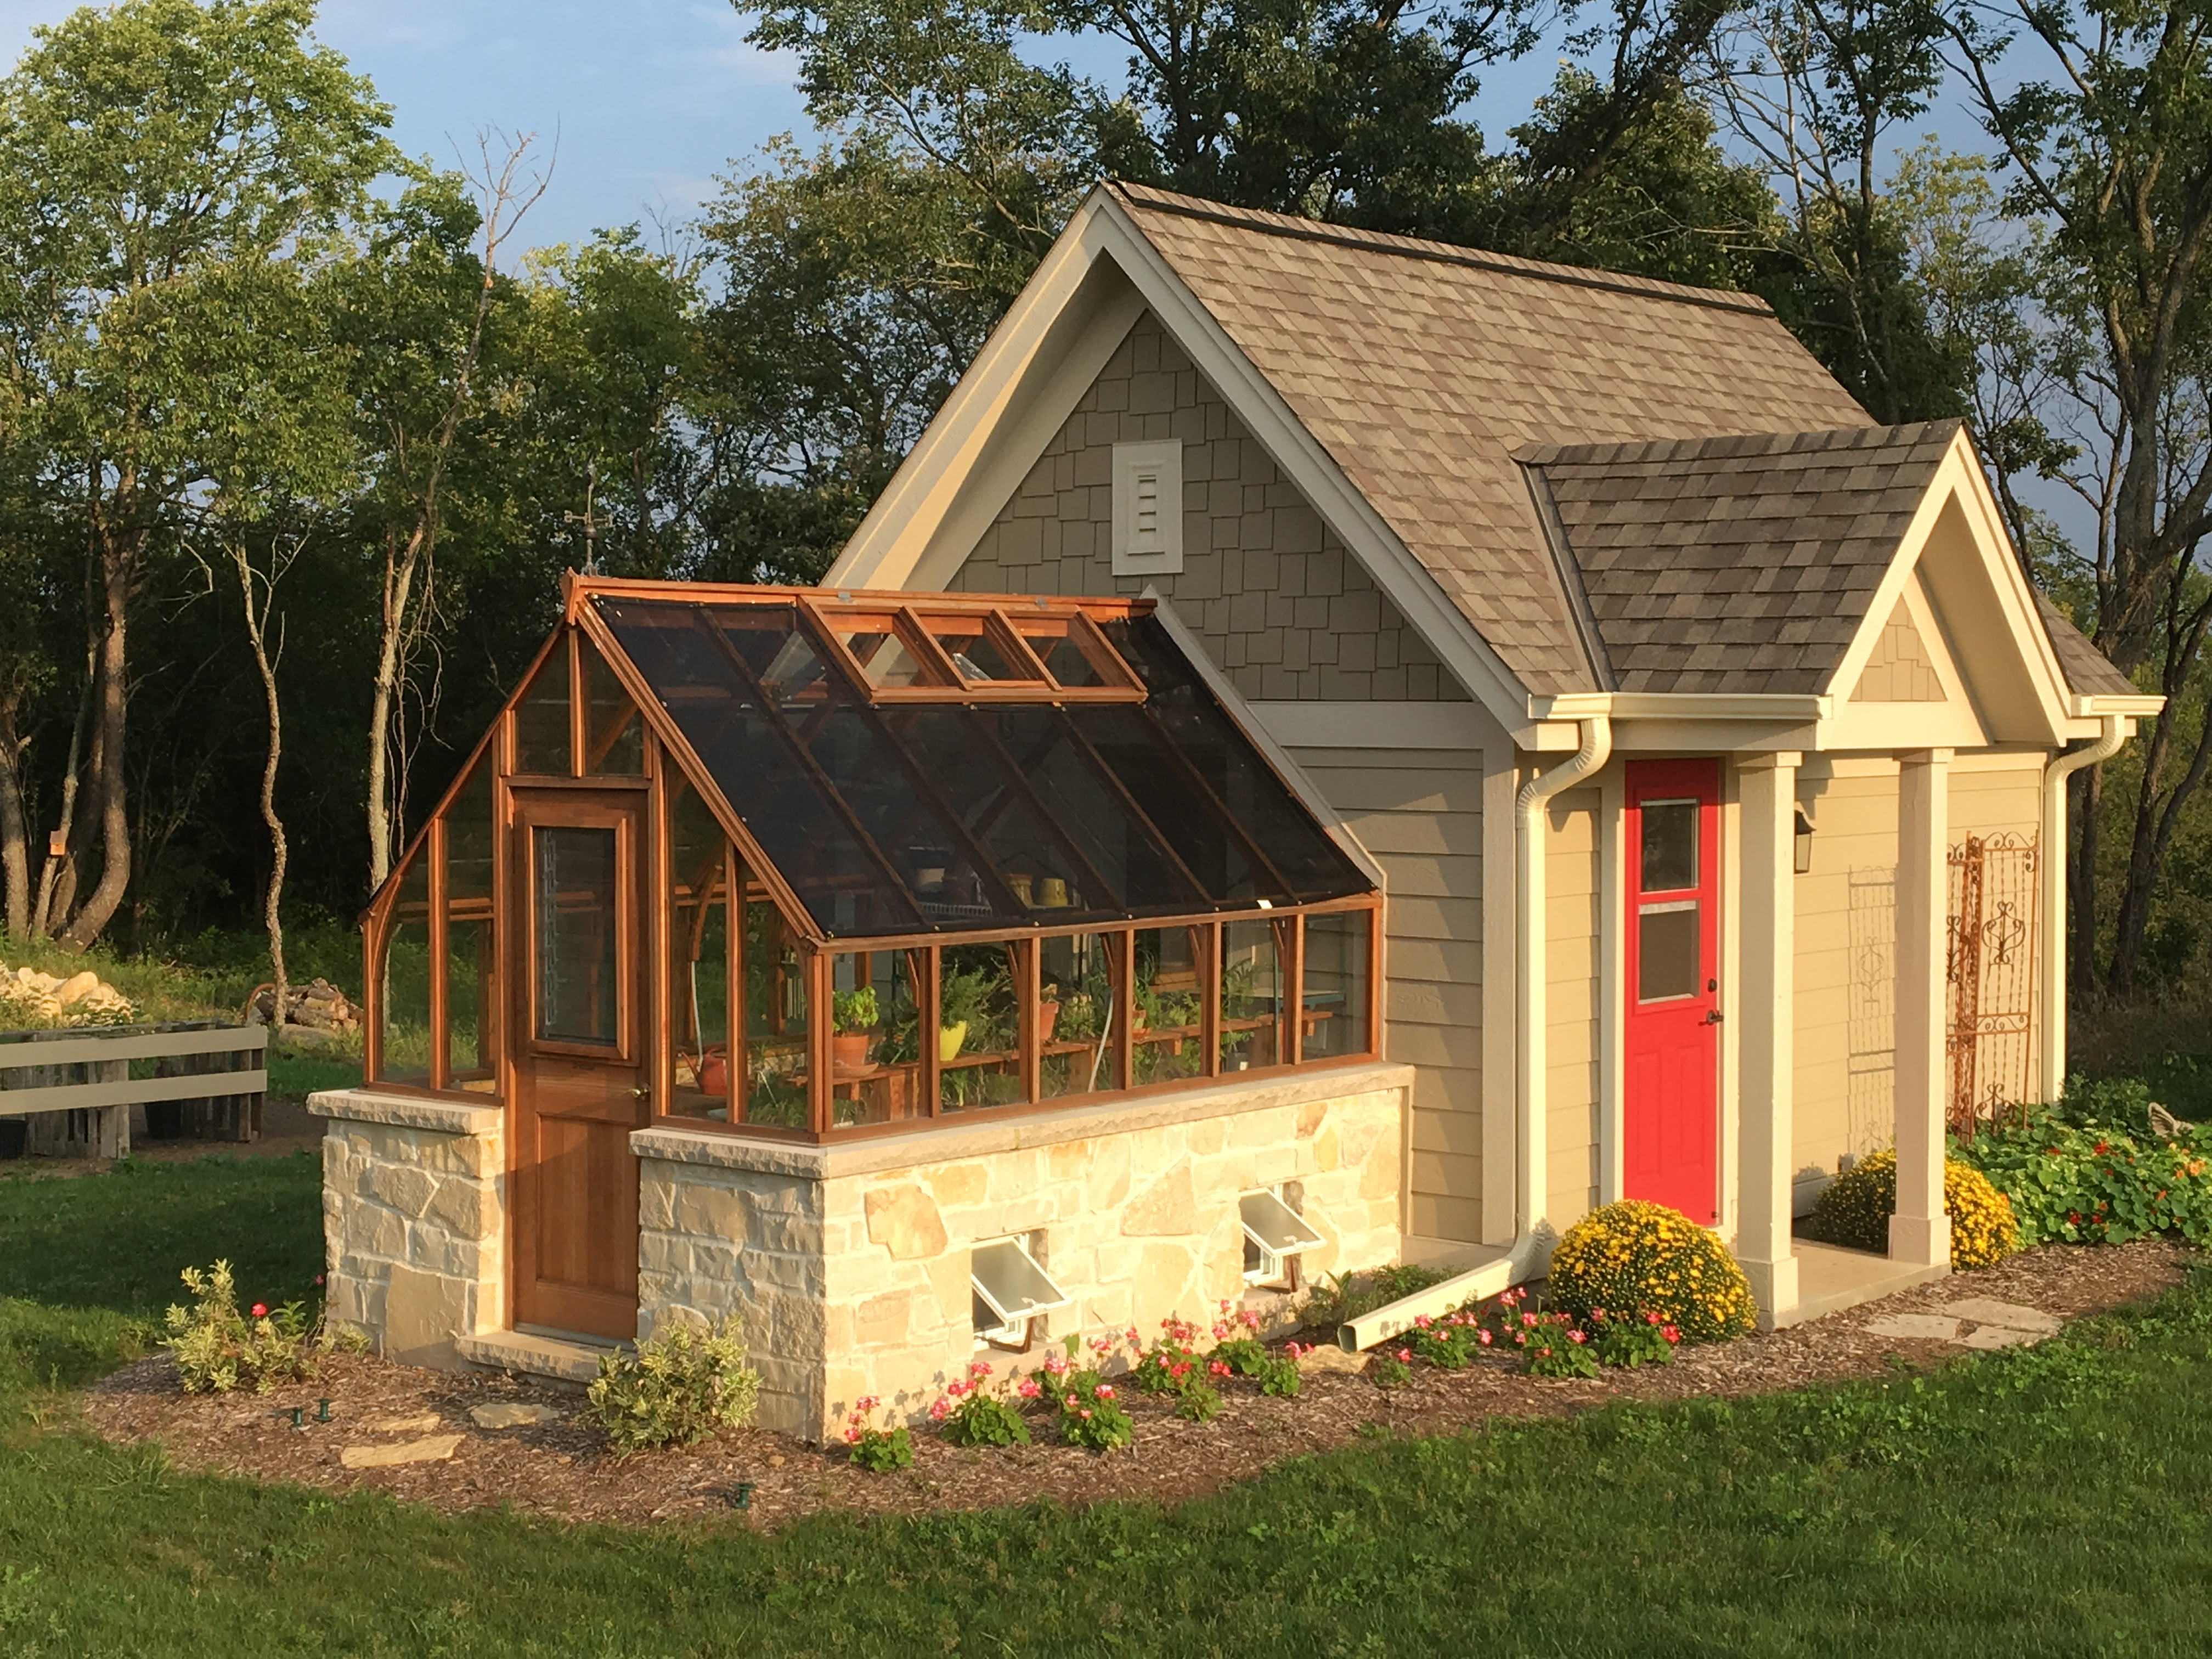 9 Pole Barn Plans 1 Standard Garage Plan 1 Shed Plan And A Free Cabin Plan Only 29 99 together with Product gallery likewise Pole Barns further Run In Sheds furthermore Viewtopic. on lean to shed